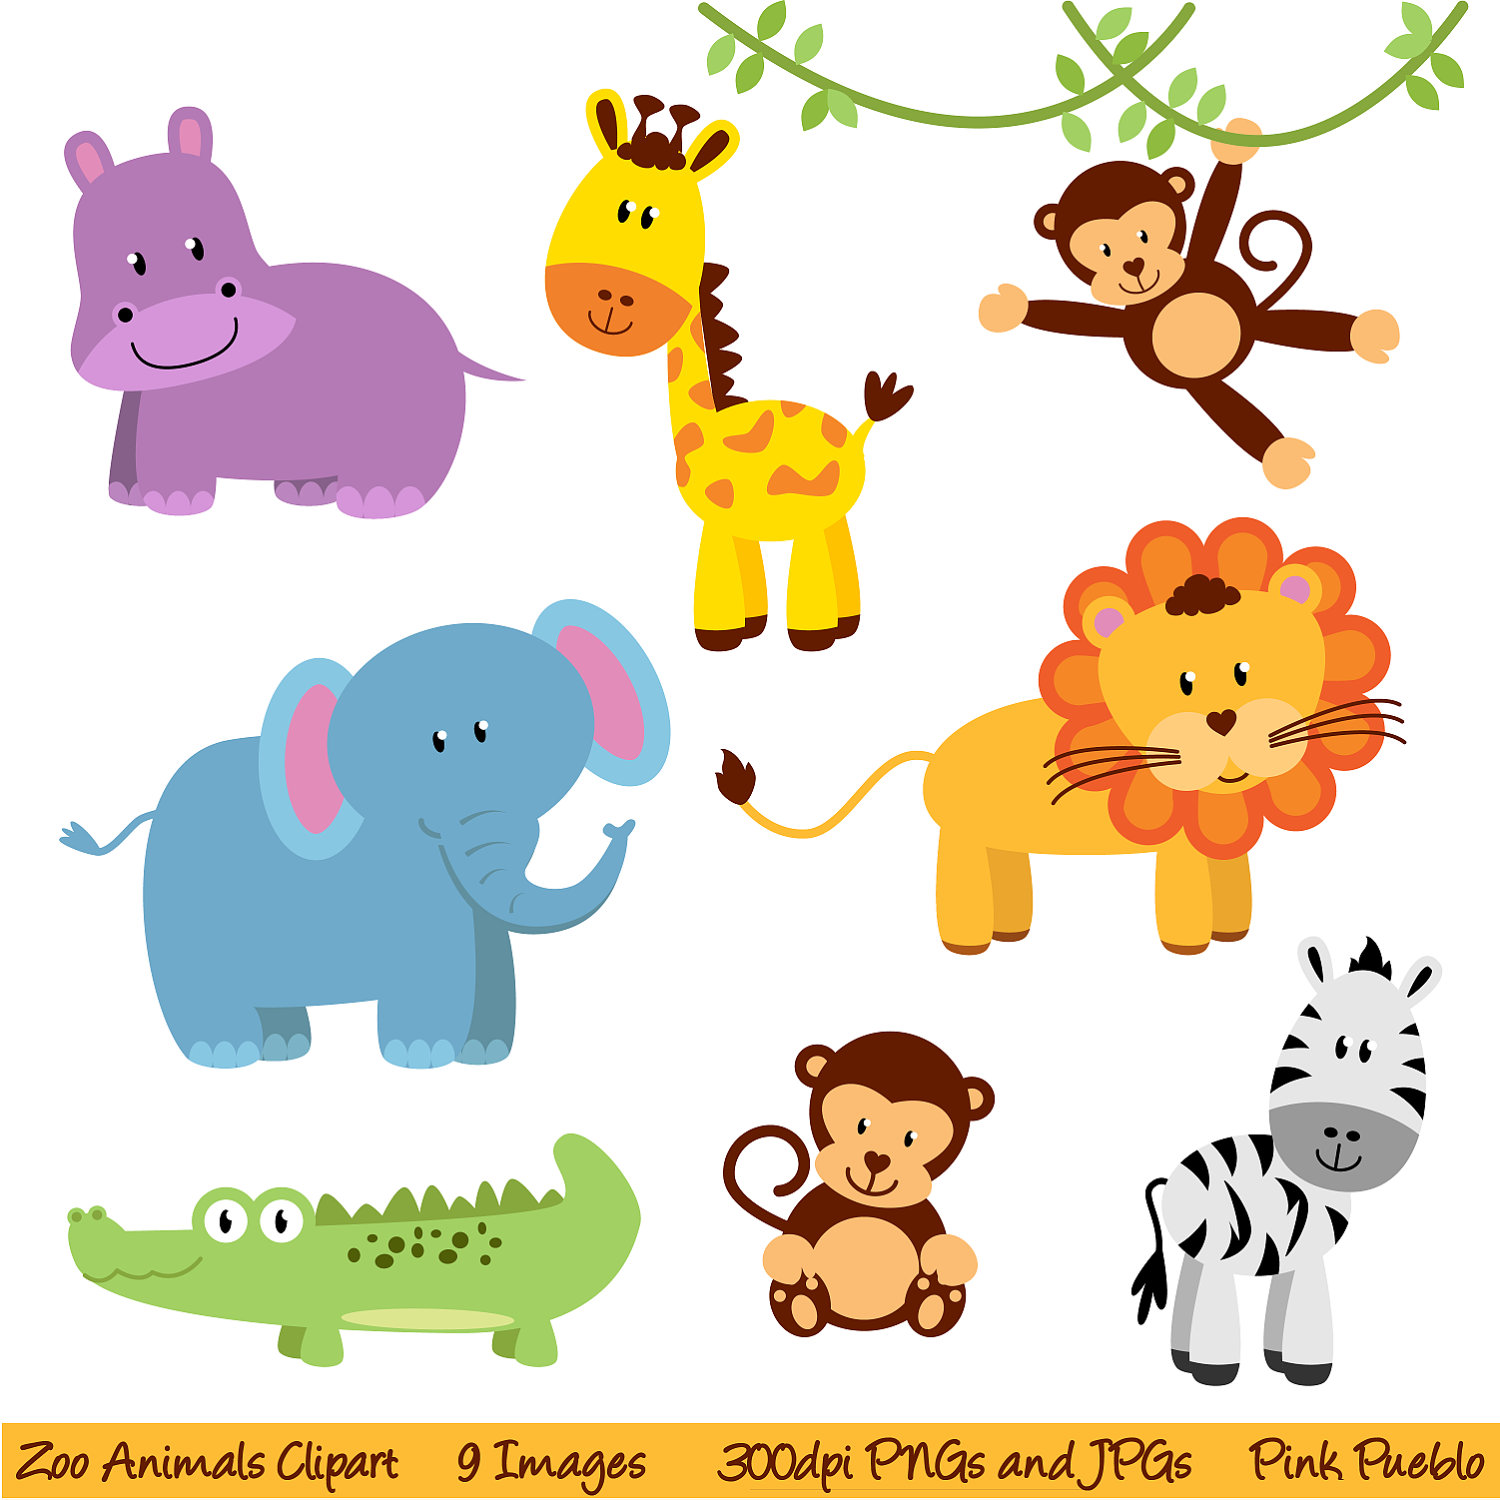 Printable Animal Clipart at GetDrawings.com.